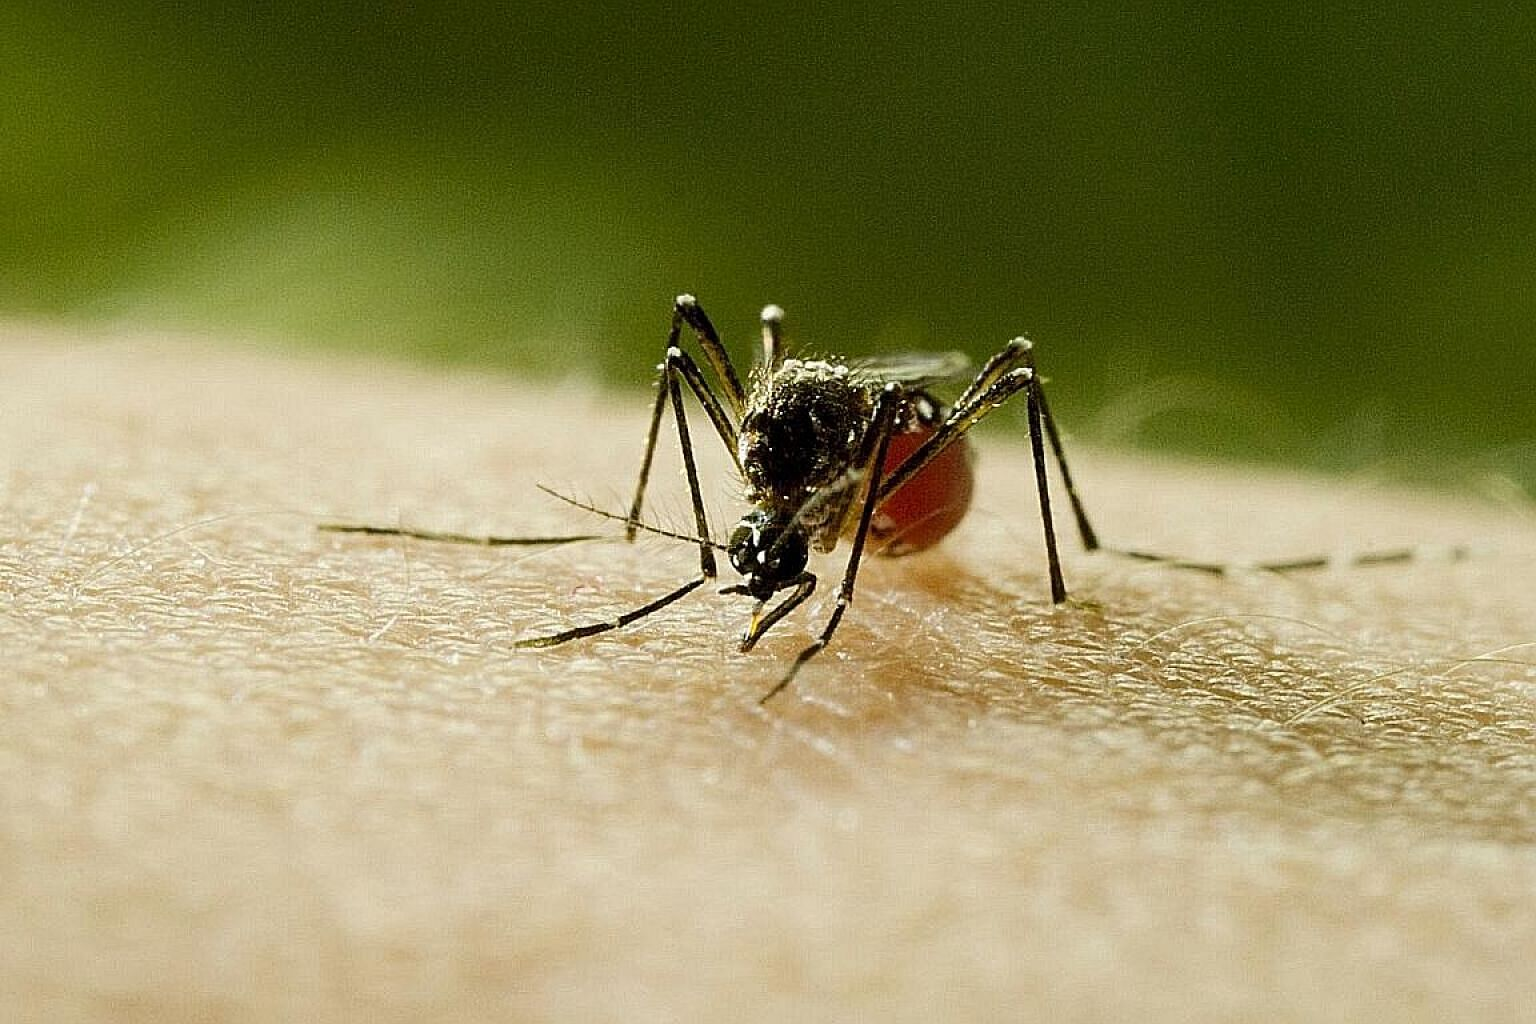 A still from Mosquito shows an Aedes aegypti mosquito, which can carry multiple diseases.